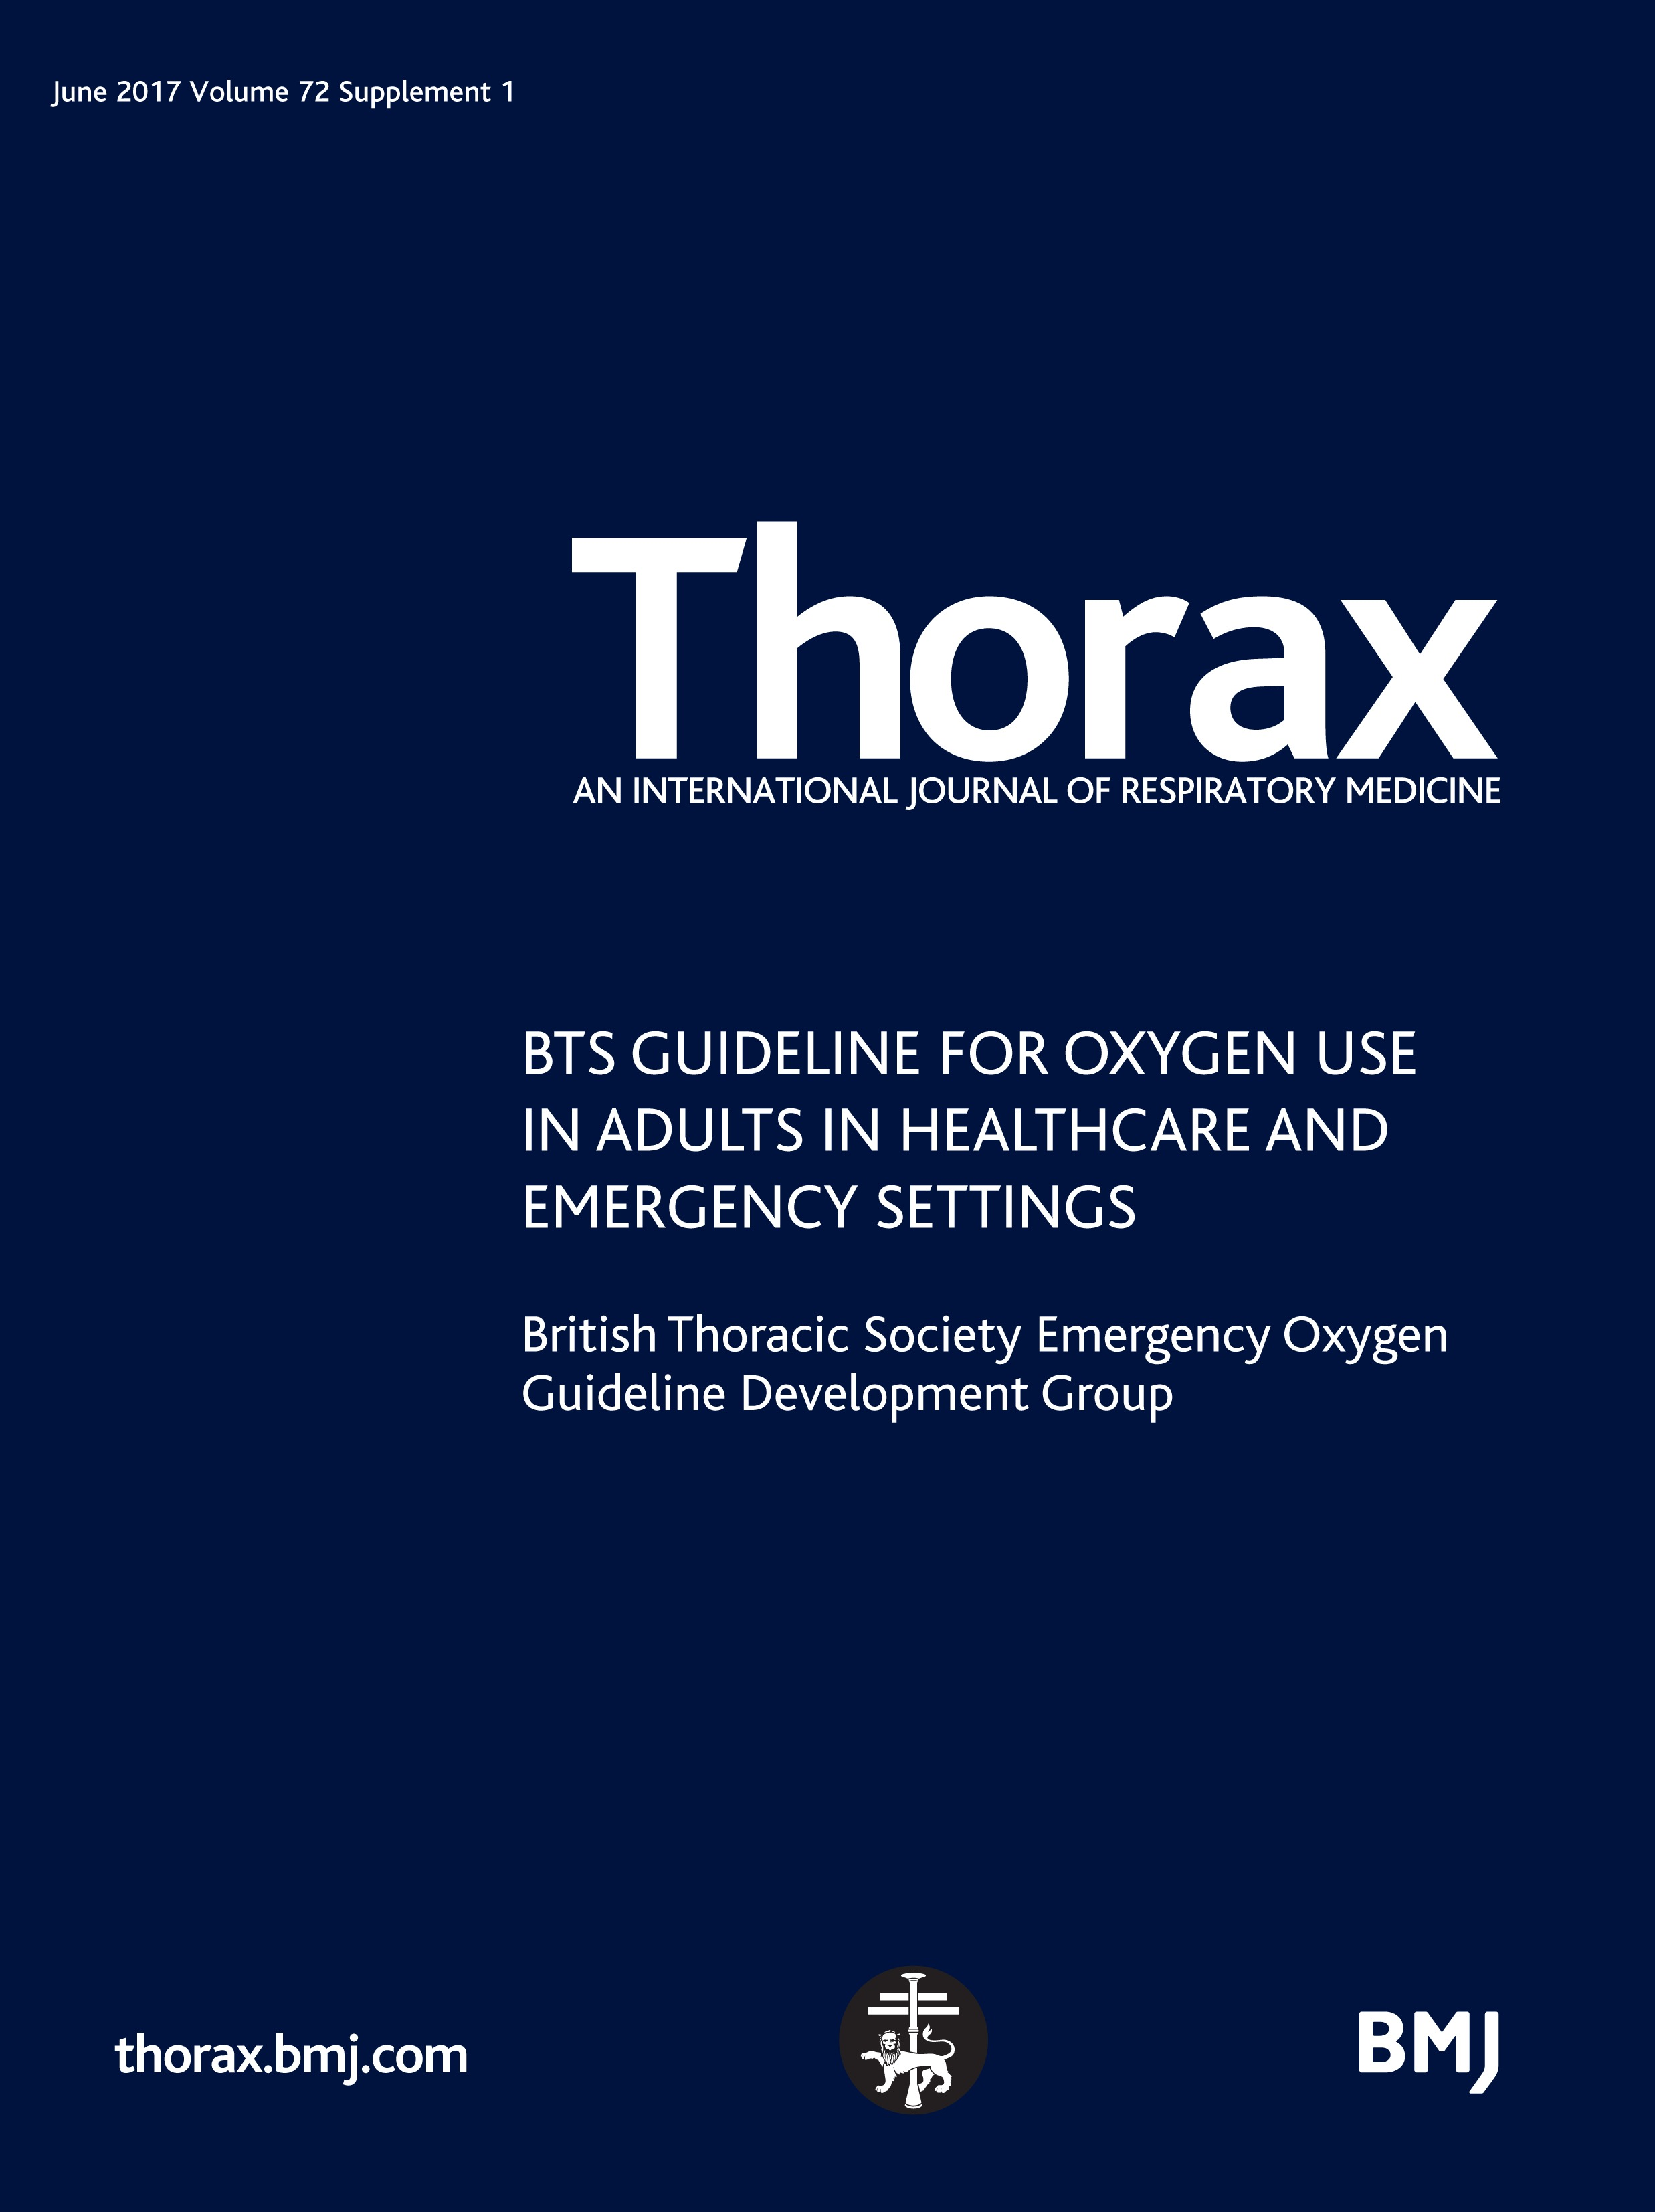 BTS guideline for oxygen use in adults in healthcare and